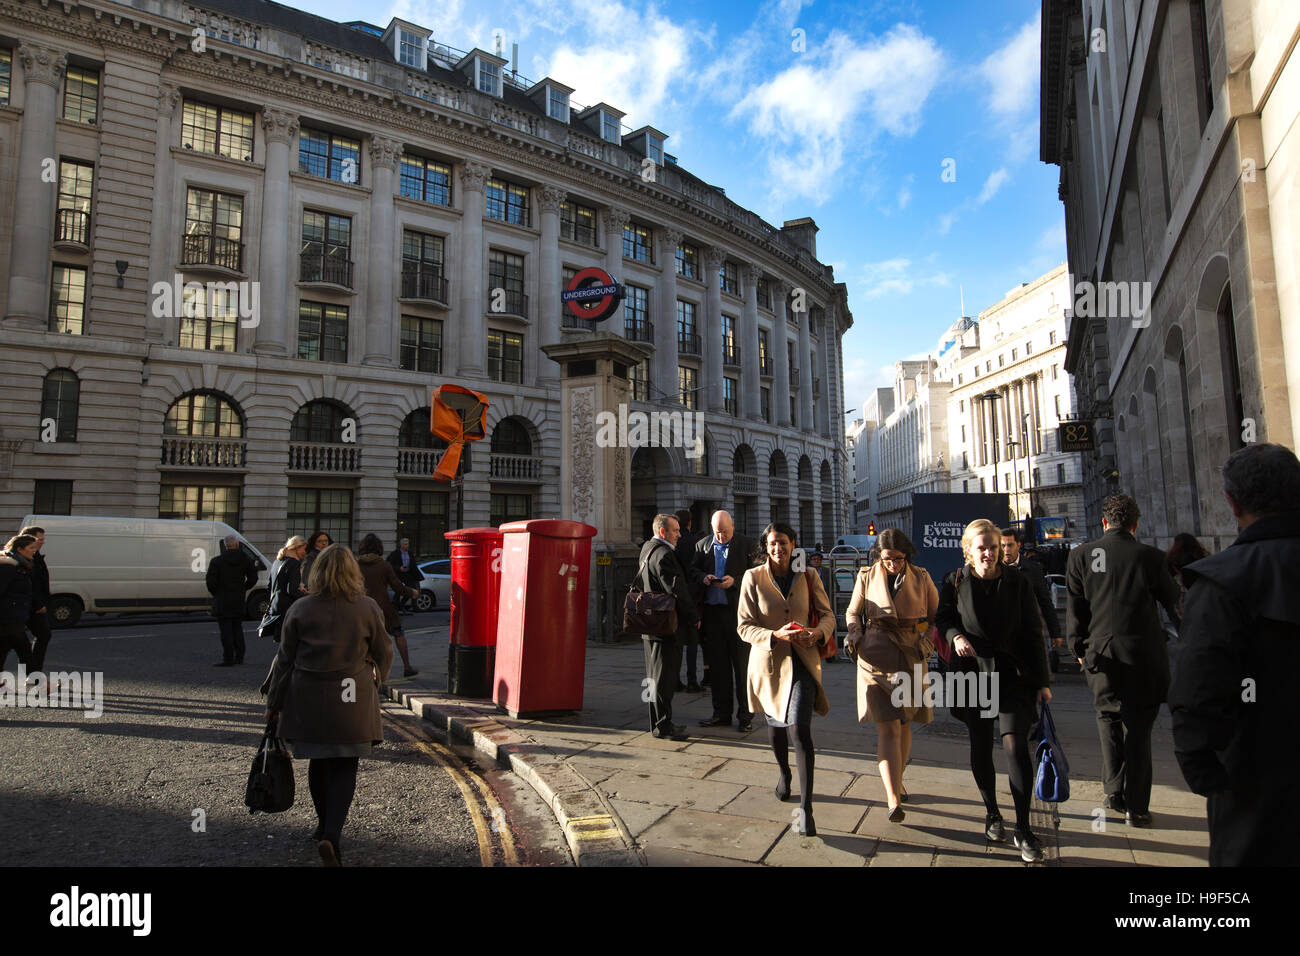 Lombard Street, From Bank junction, where nine streets converge by the Bank of England, Lombard Street runs southeast, - Stock Image